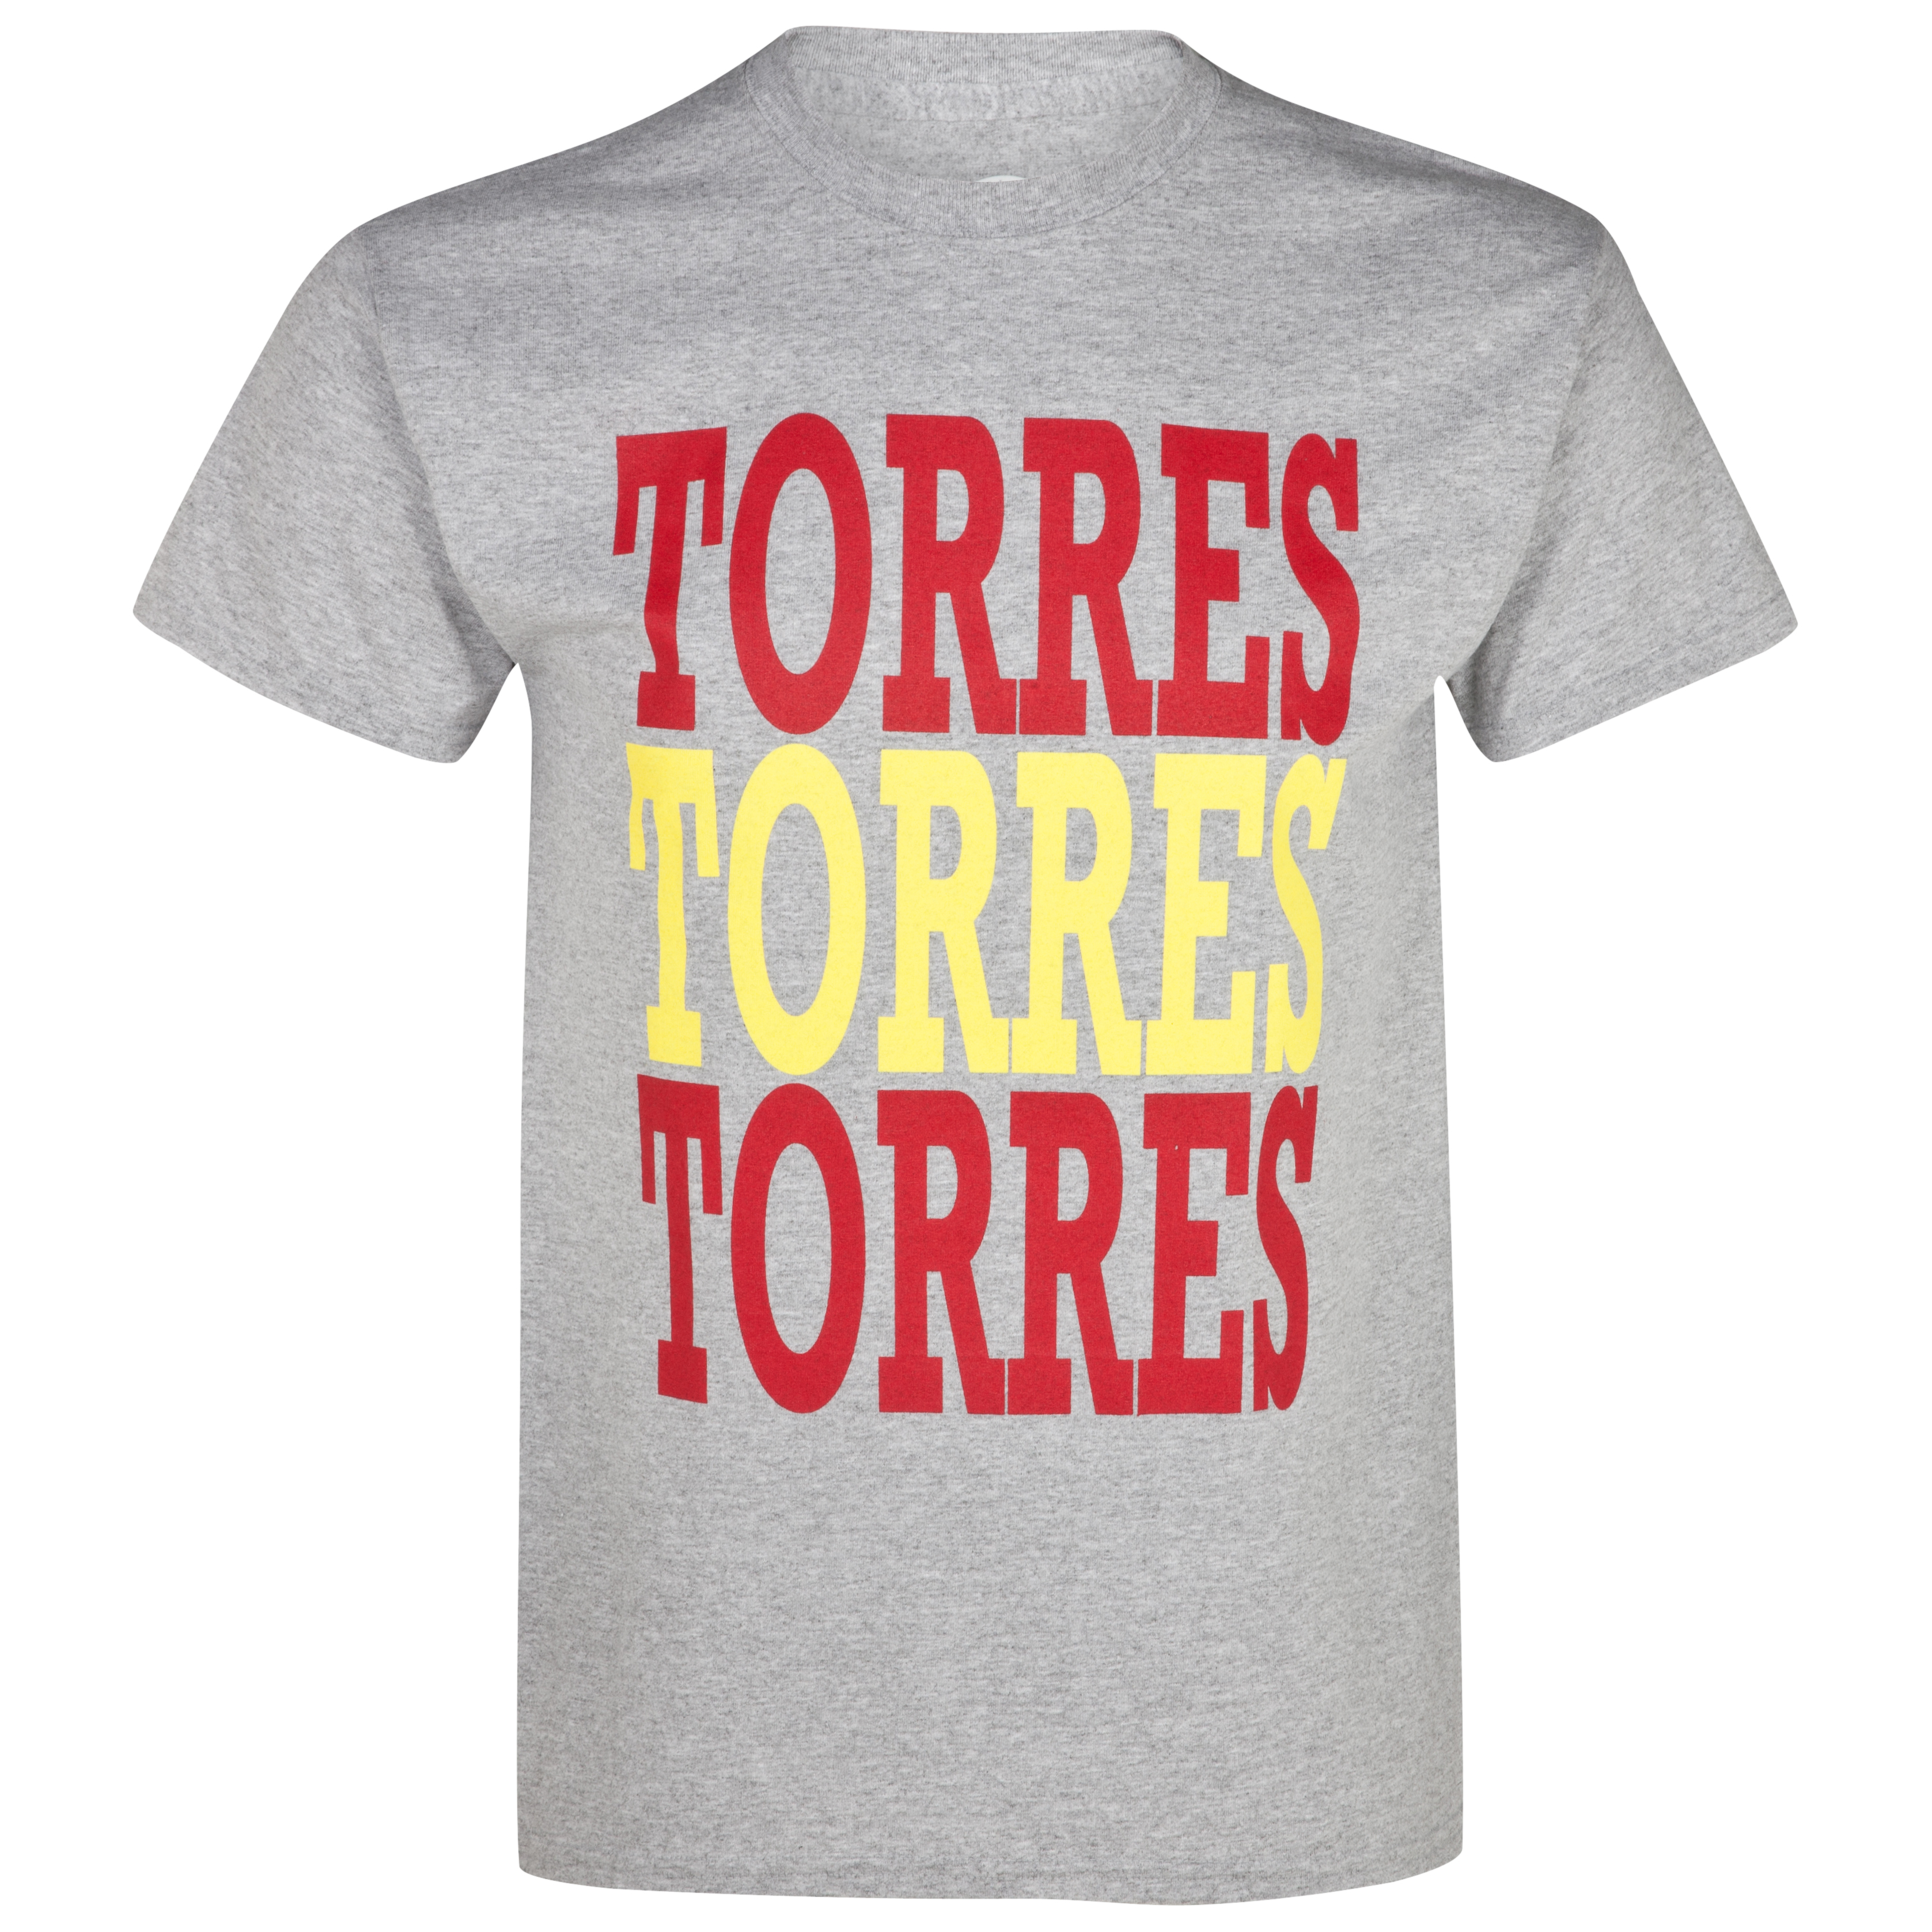 Chelsea Torres Graphic T-Shirt - Grey Marl